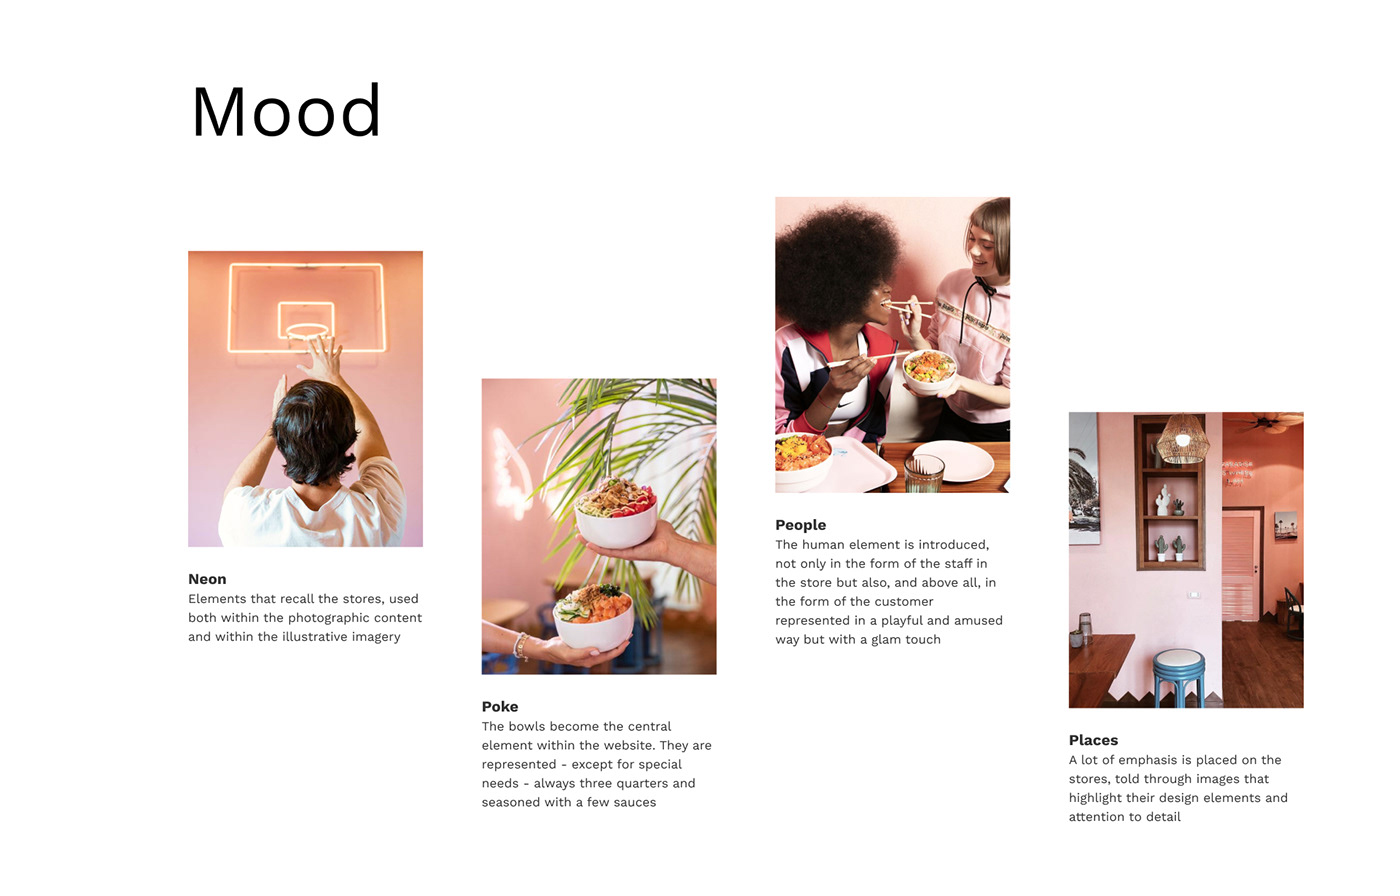 moodboard that recalls the brand main elements such as neon lights, poke bowls, people and stores